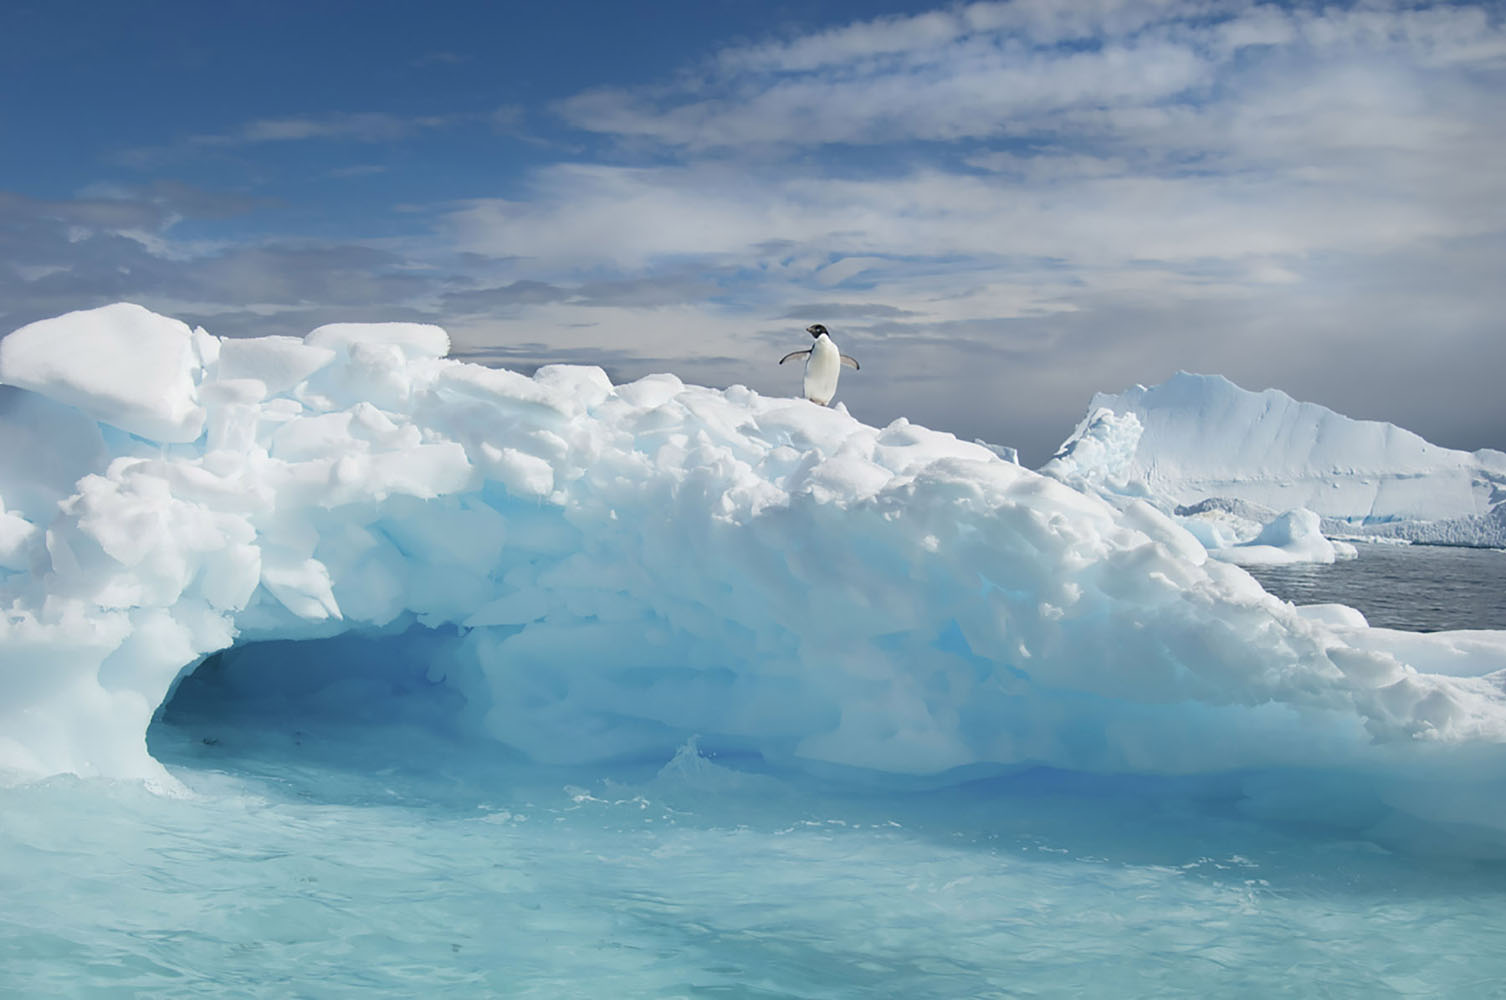 A penguin is perched on an iceberg in Antarctica.